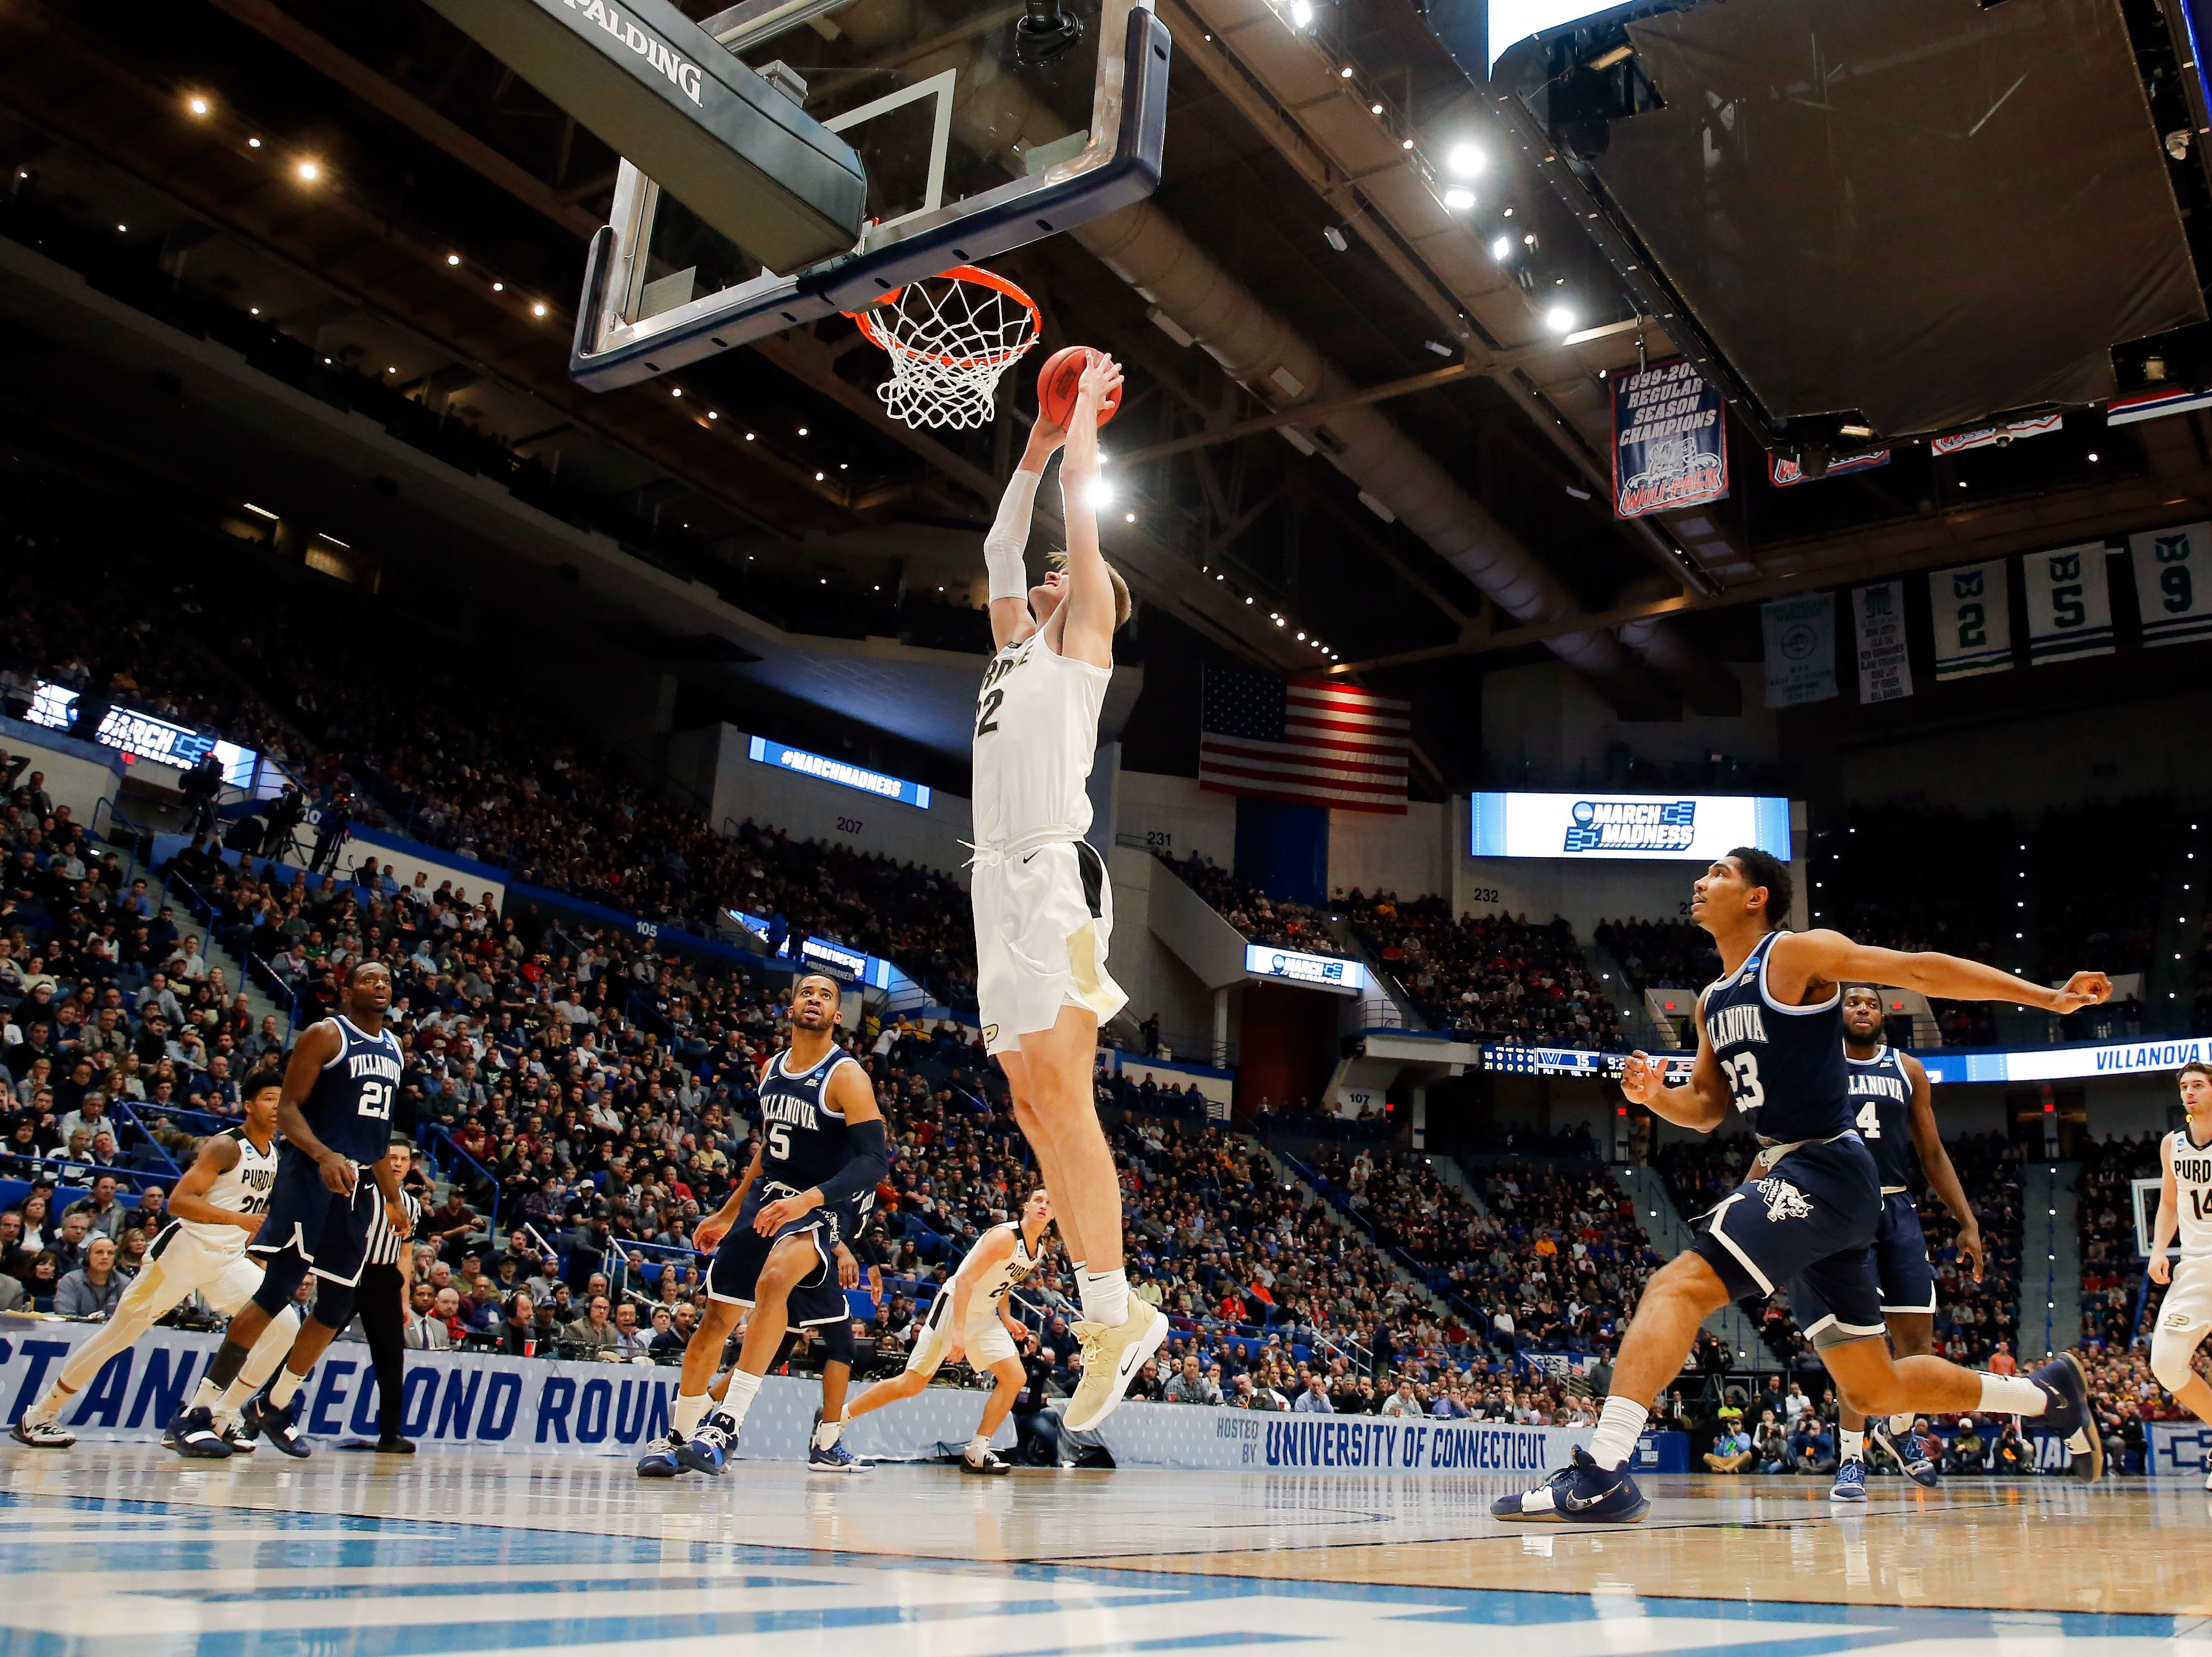 Mar 23, 2019; Hartford, CT, USA; Purdue Boilermakers center Matt Haarms (32) dunks and scores against the Villanova Wildcats during the first half of a game in the second round of the 2019 NCAA Tournament at XL Center. Mandatory Credit: David Butler II-USA TODAY Sports